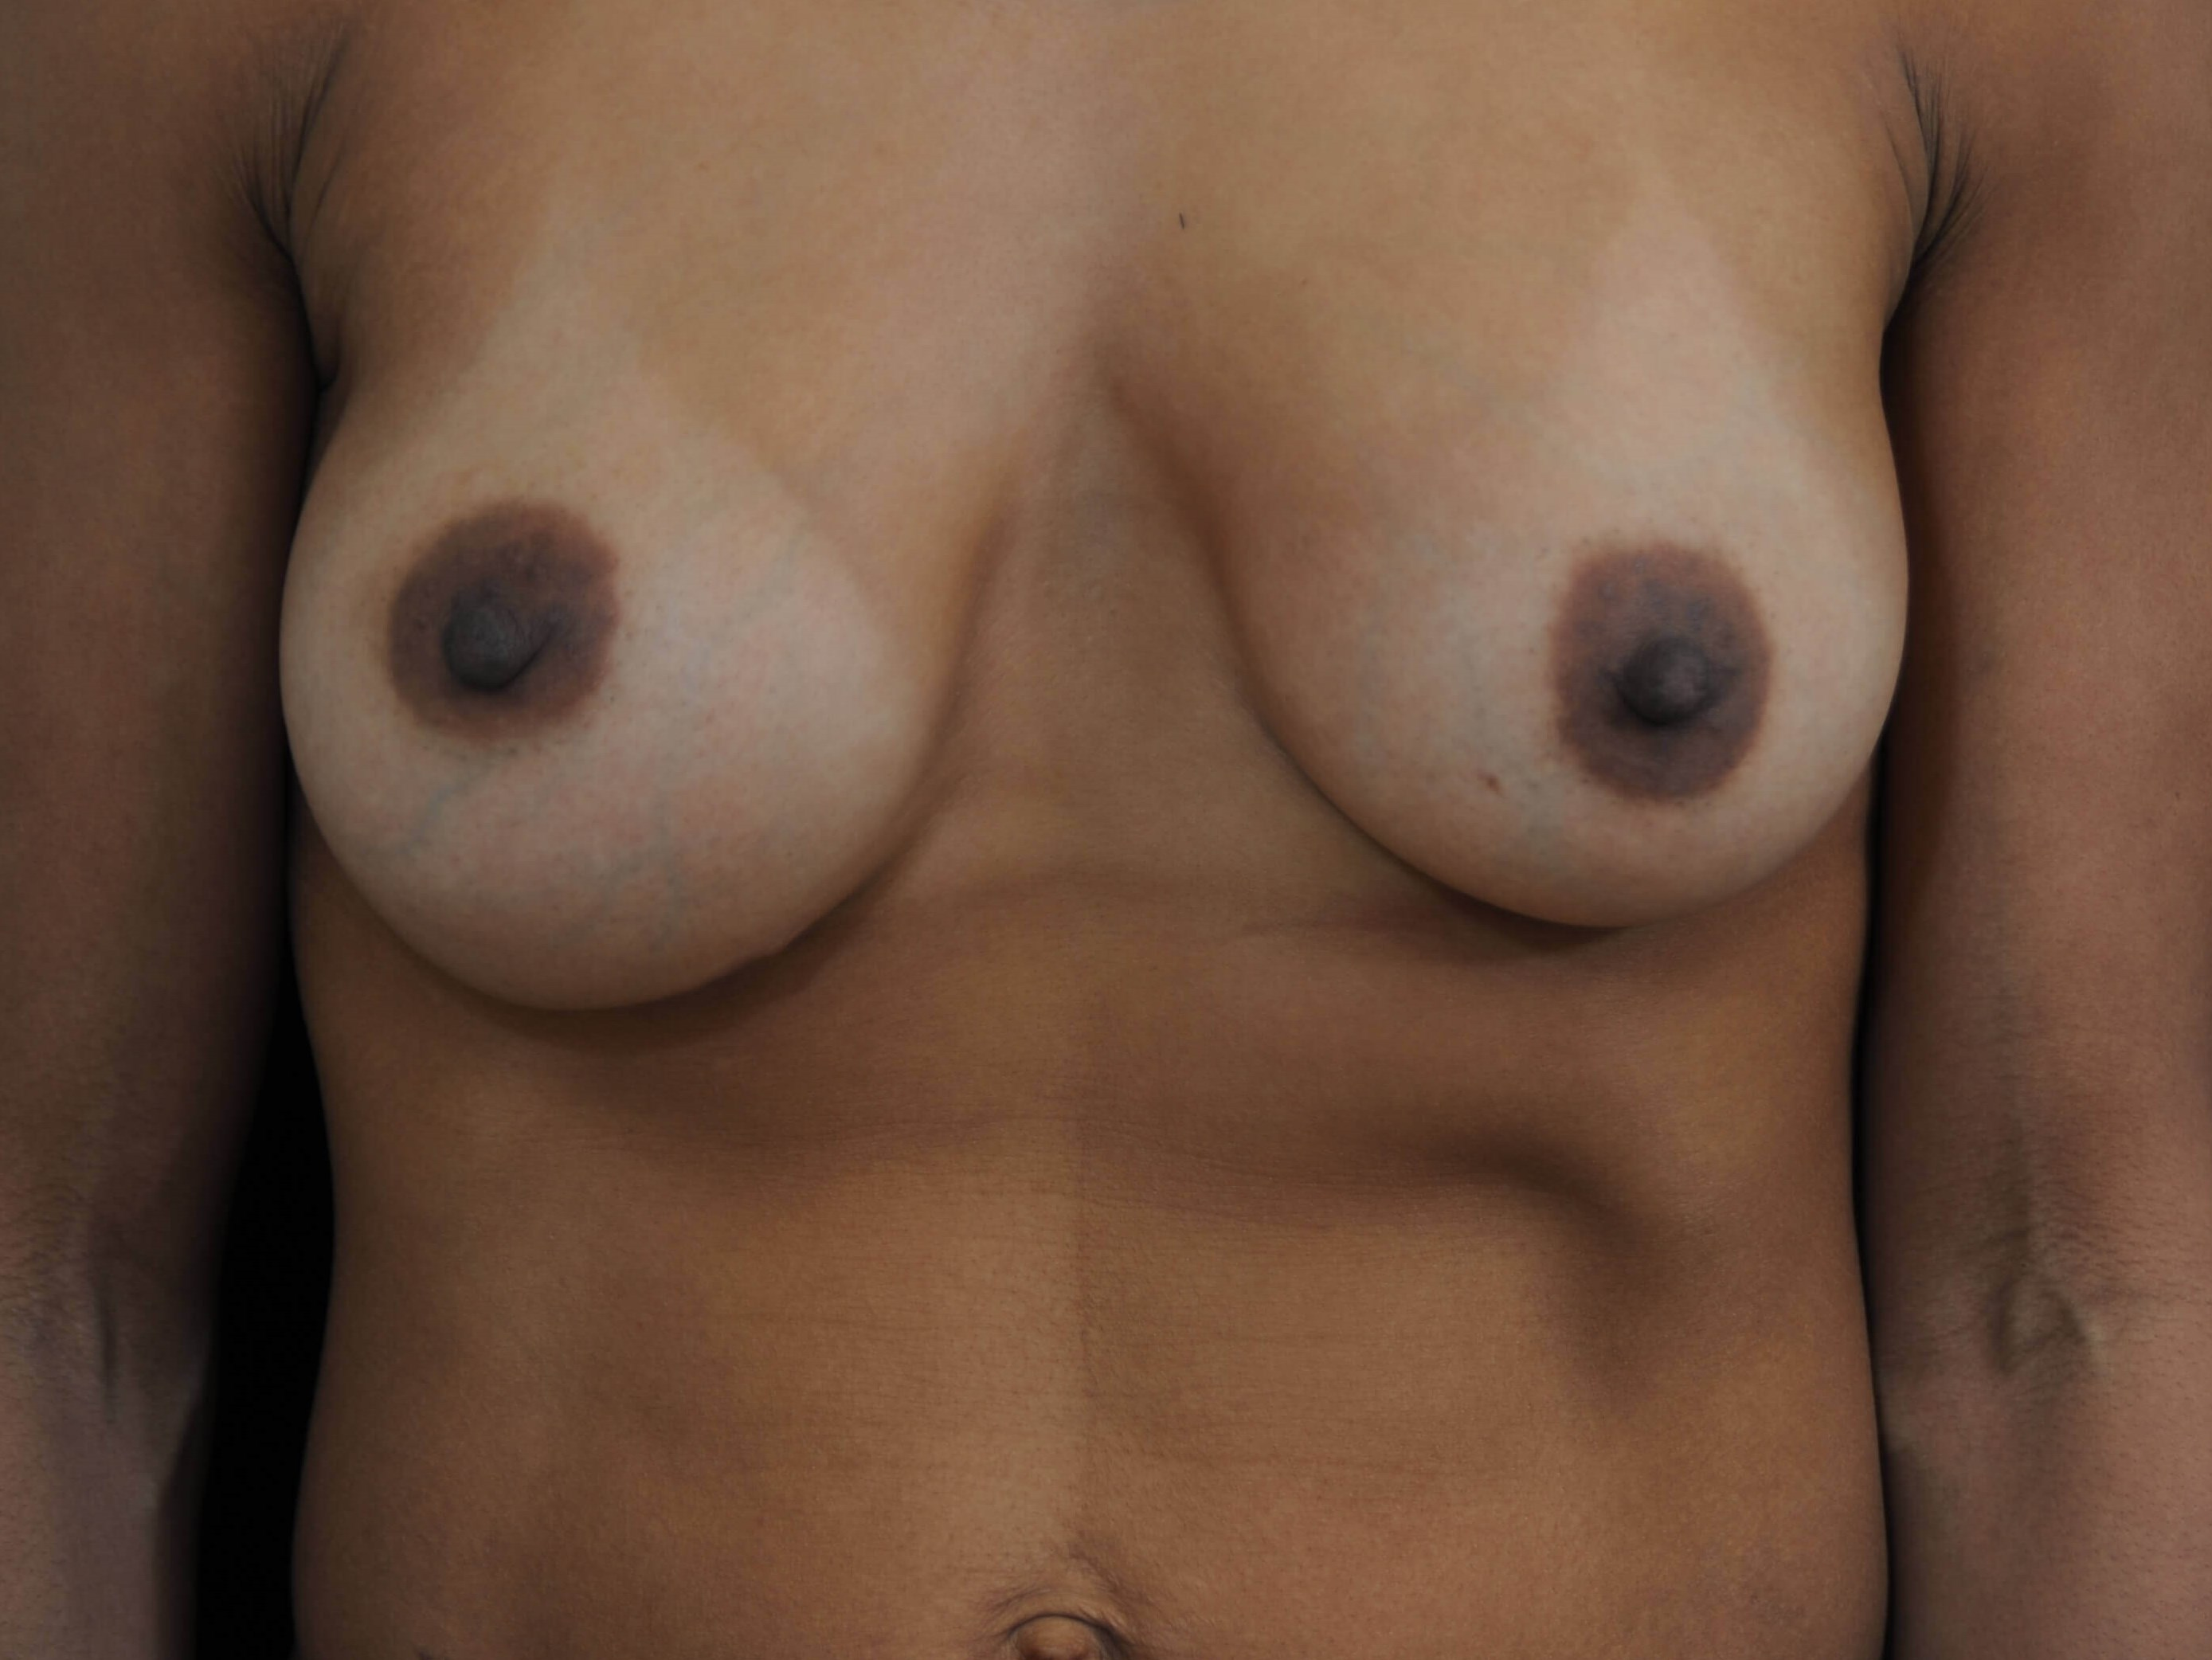 DALLAS WOMAN HAS RUPTURED BREAST IMPLANT, EXCHANGES SALINE FOR SILICONE GEL